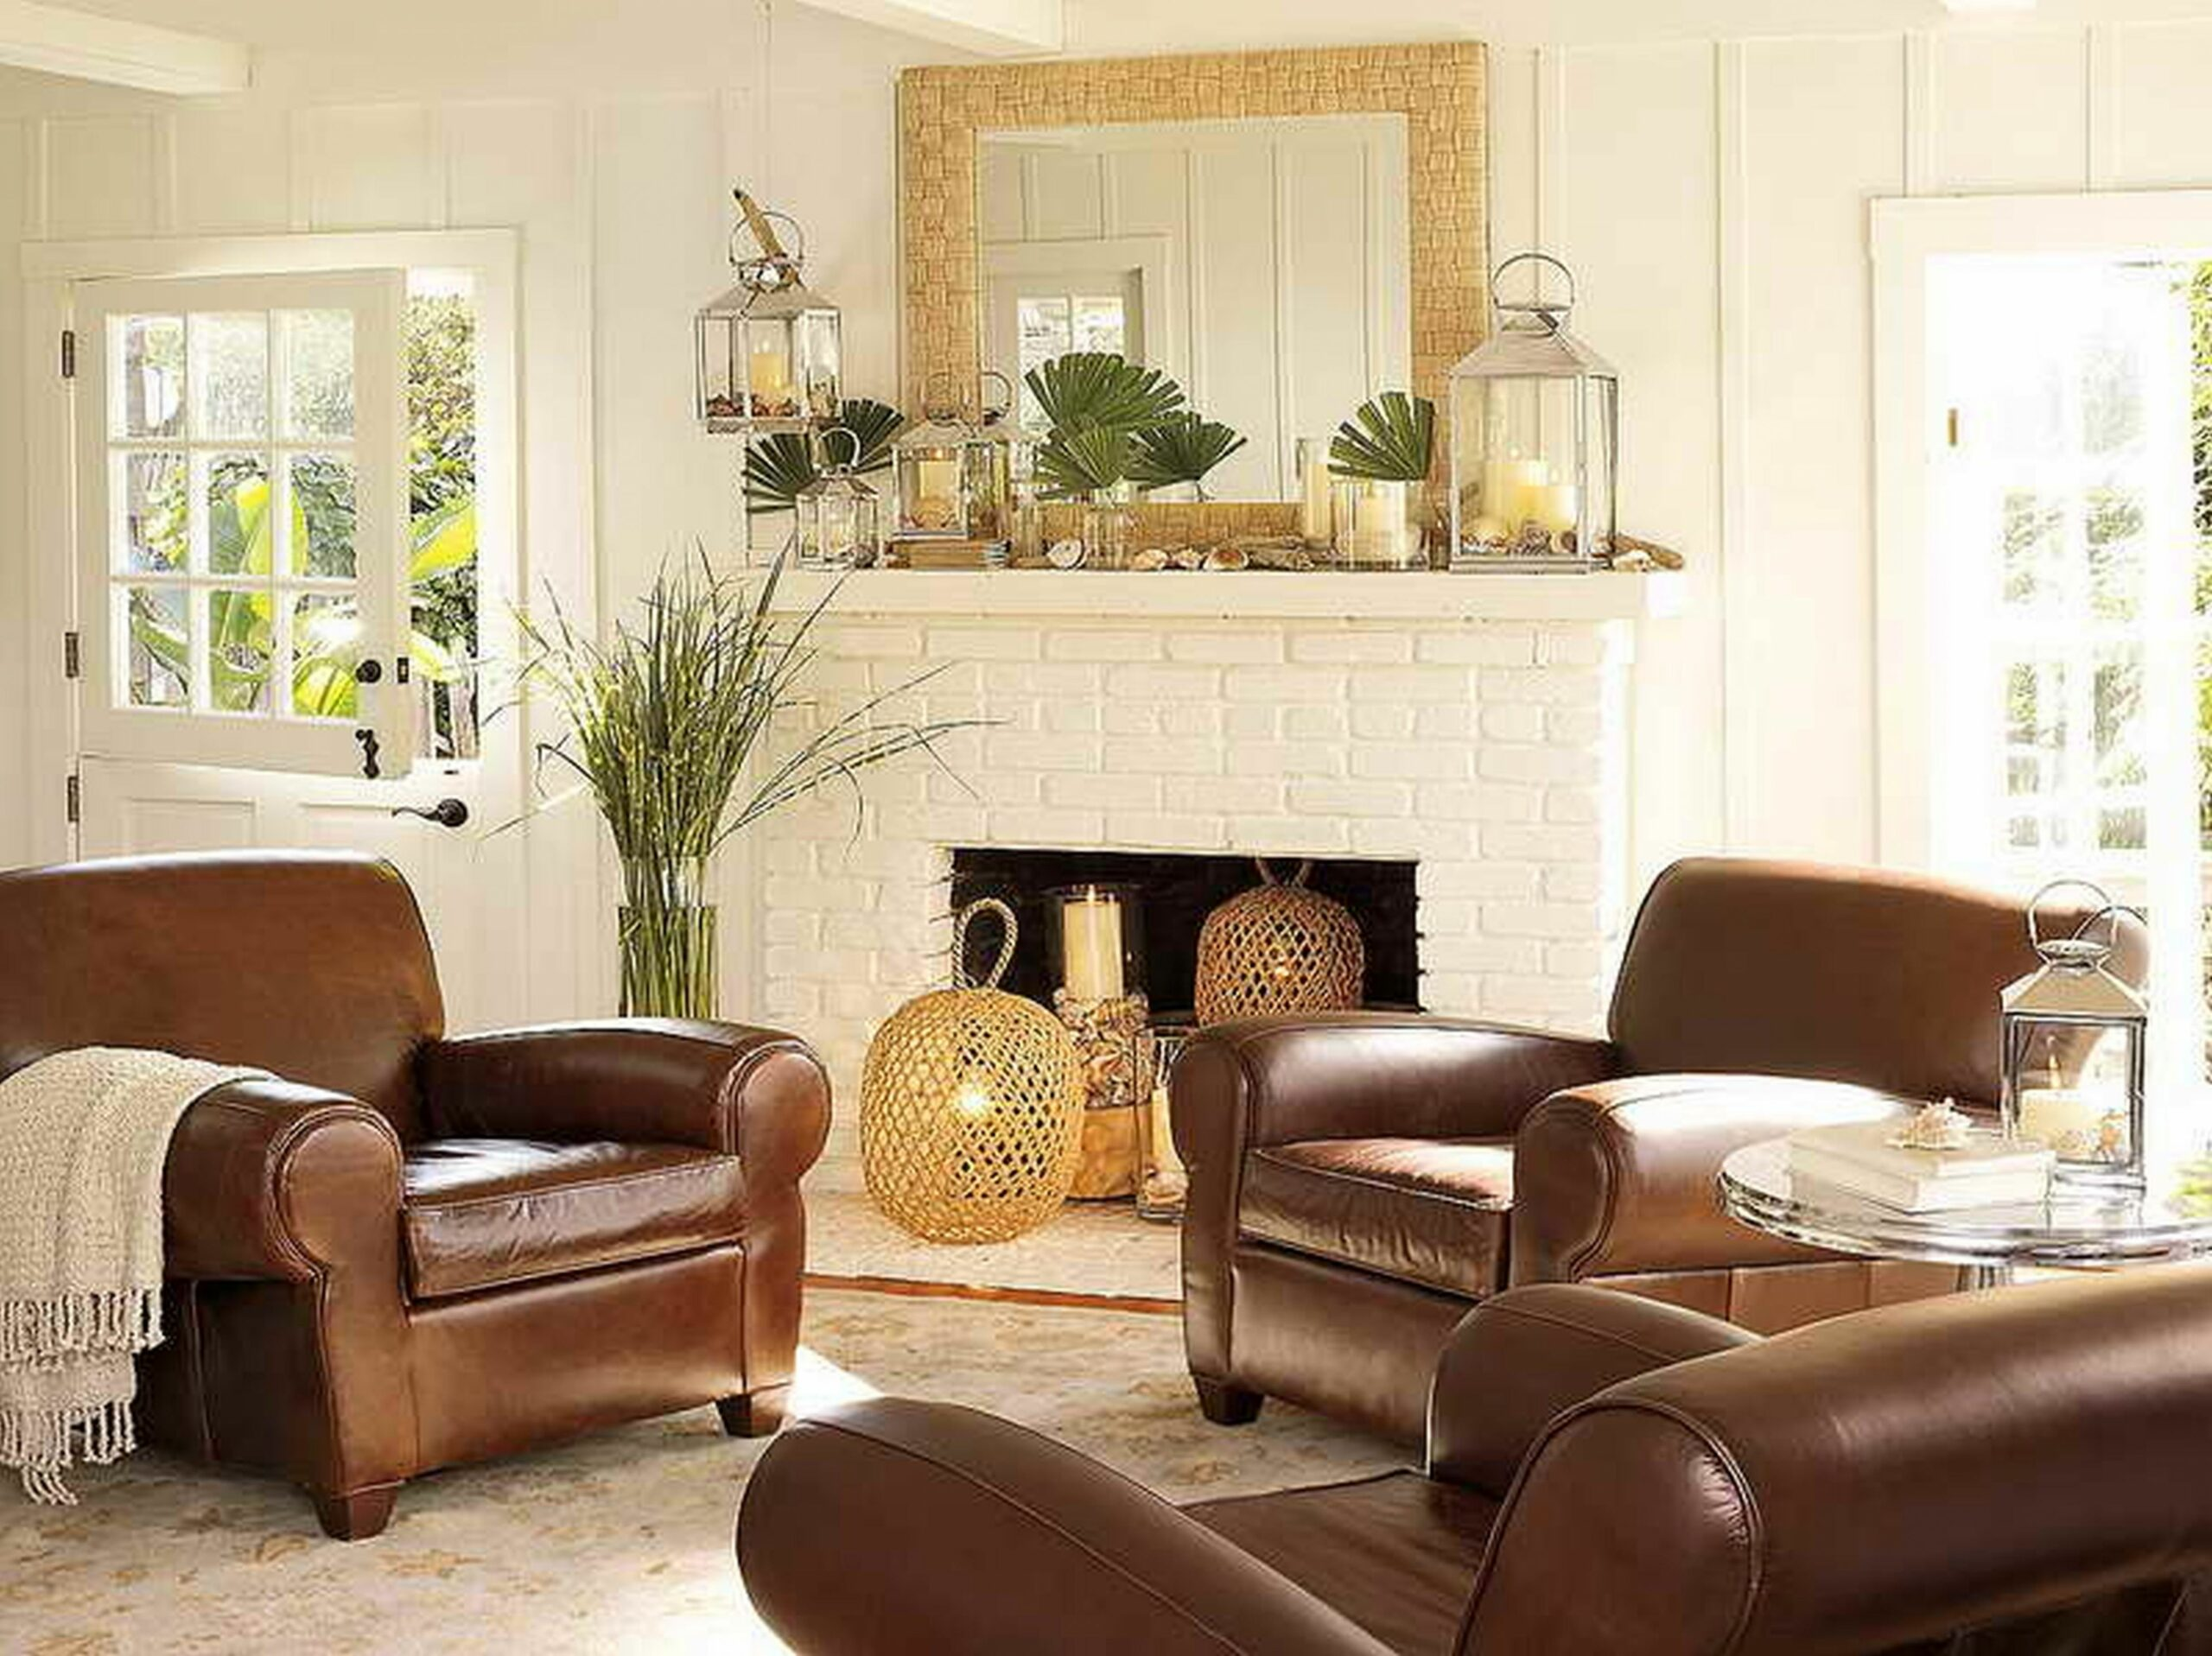 light brown leather sofa decorating ideas - Hunkie - living room ideas brown couch